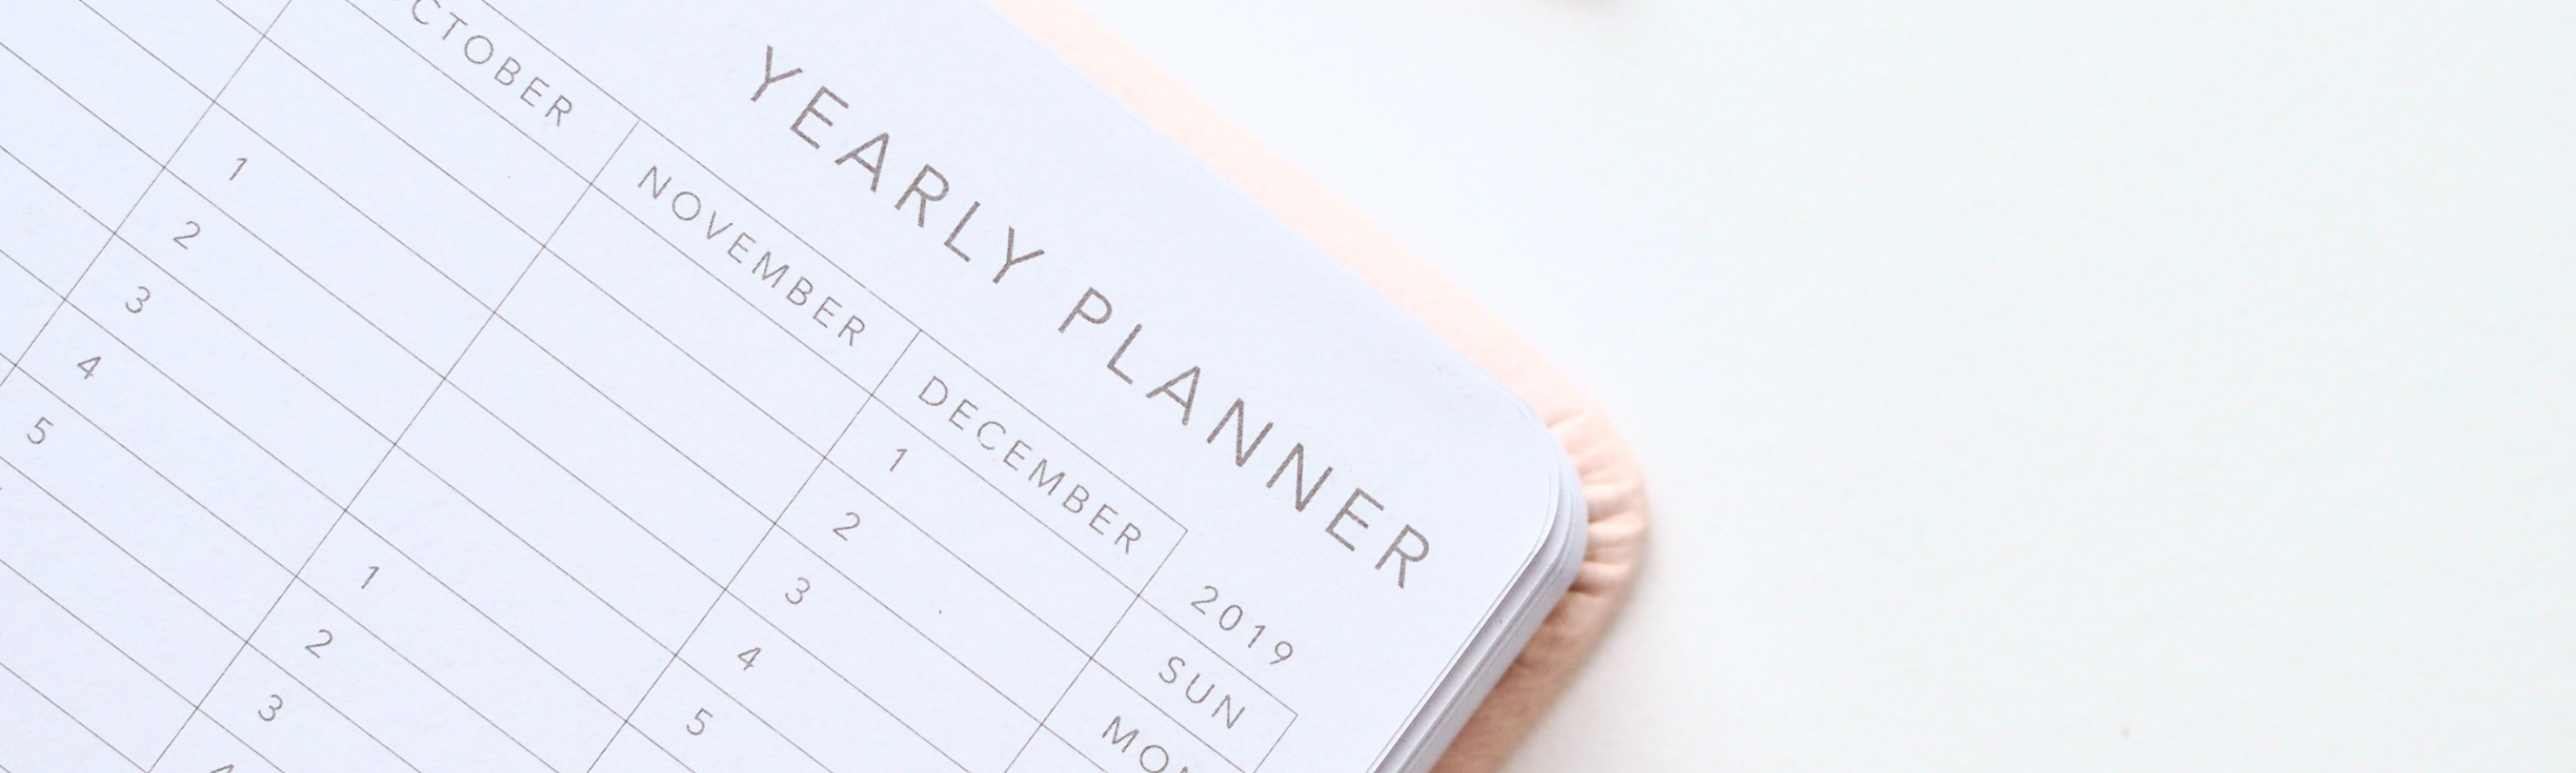 Yearly planner with pen